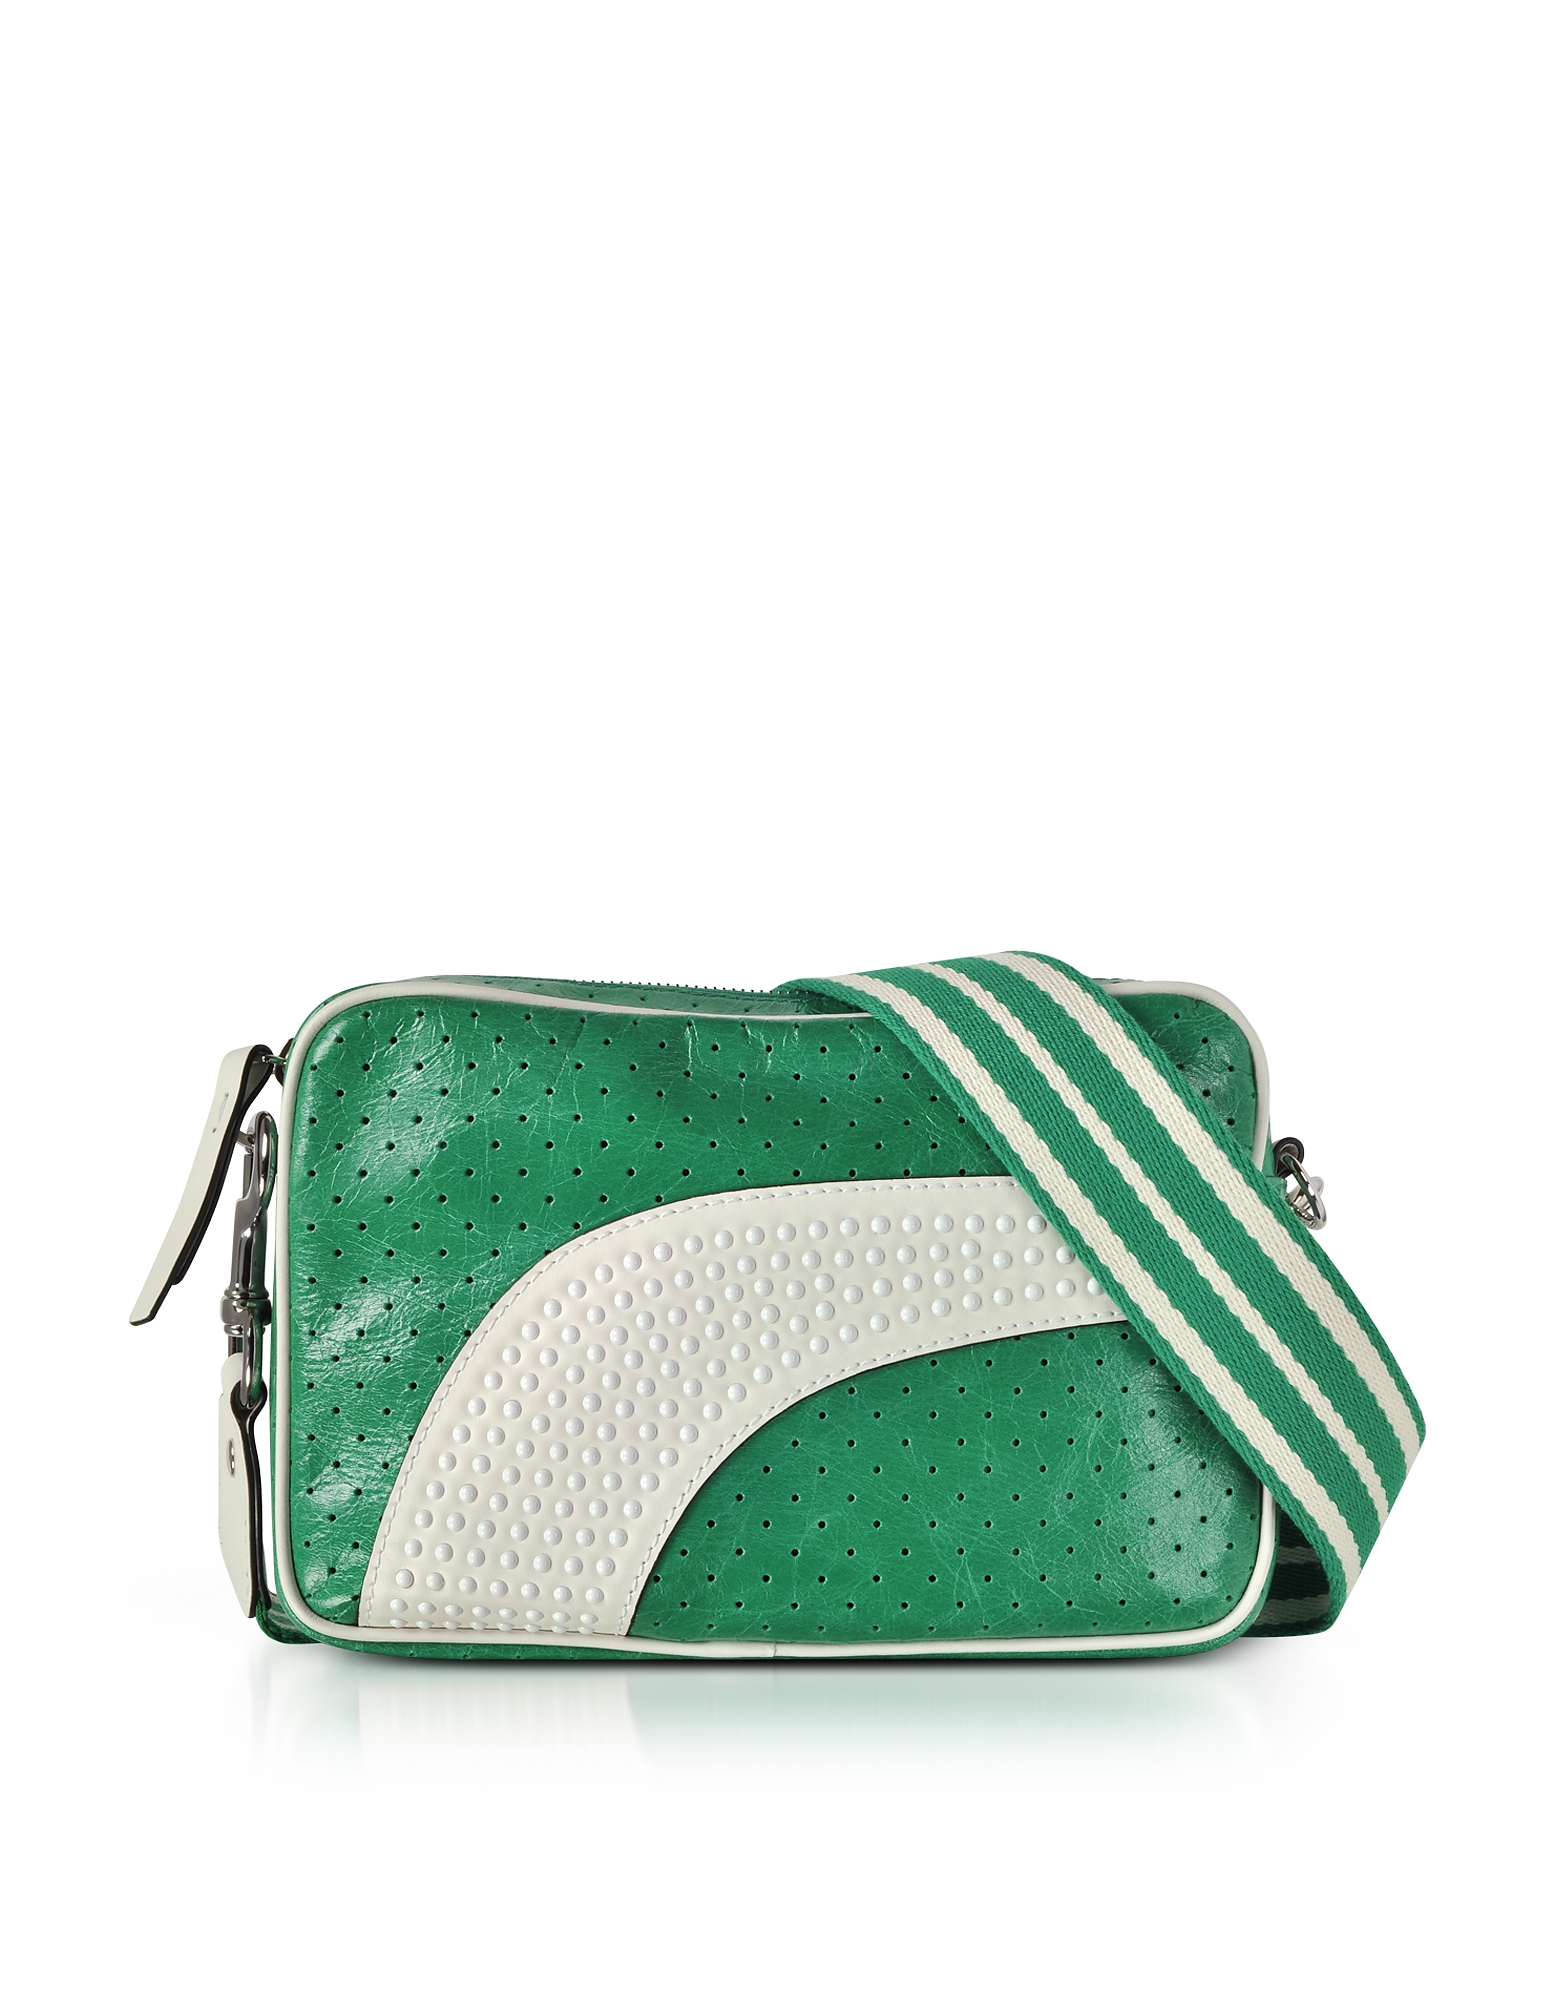 RED Valentino Handbags, Mint Green/Milk White Perforated Leather Crossbody Bag w/Studs